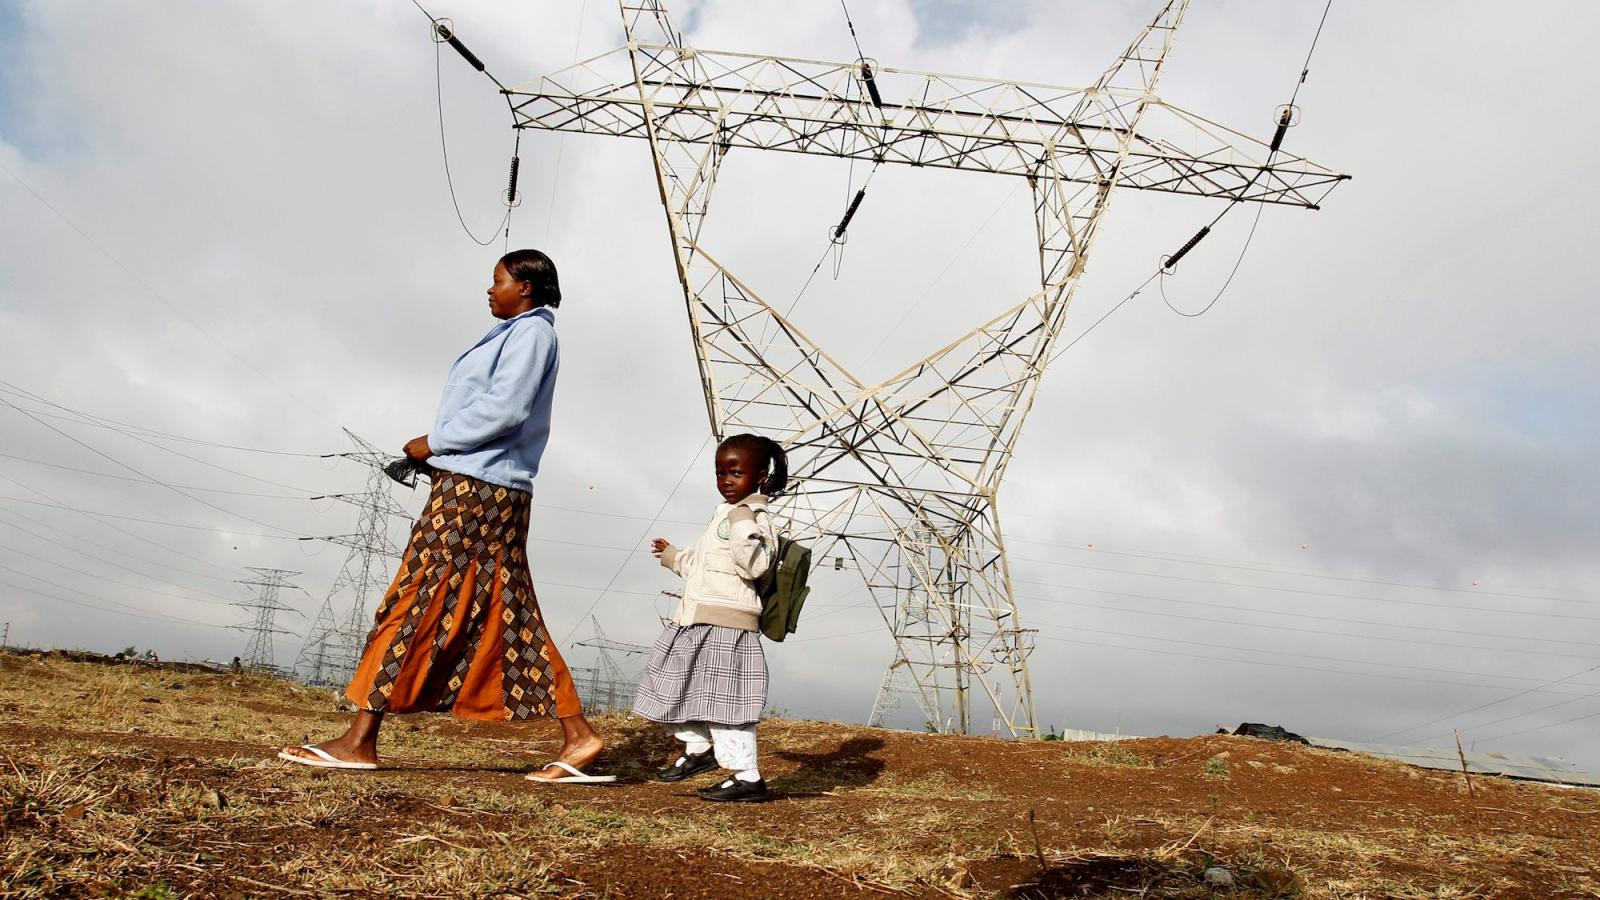 Kenya Is Rolling Out Its National Electricity Program In Half The Electrical Grid Plan Time It Took America Quartz Africa